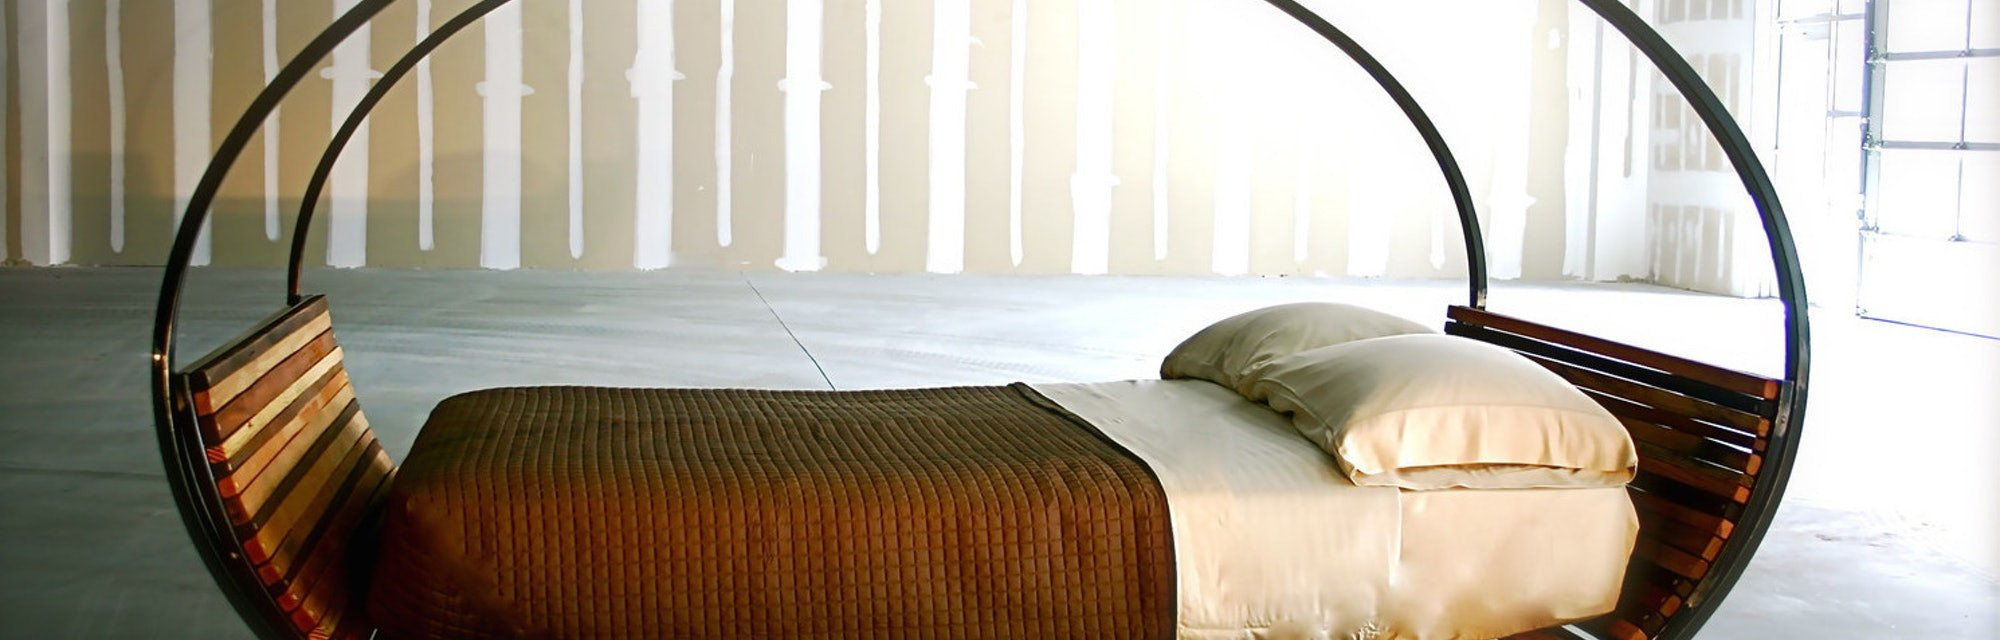 Hammock Bed for Bedroom Inspirational Rocking Beds are A Crazy and Crazy Effective solution to